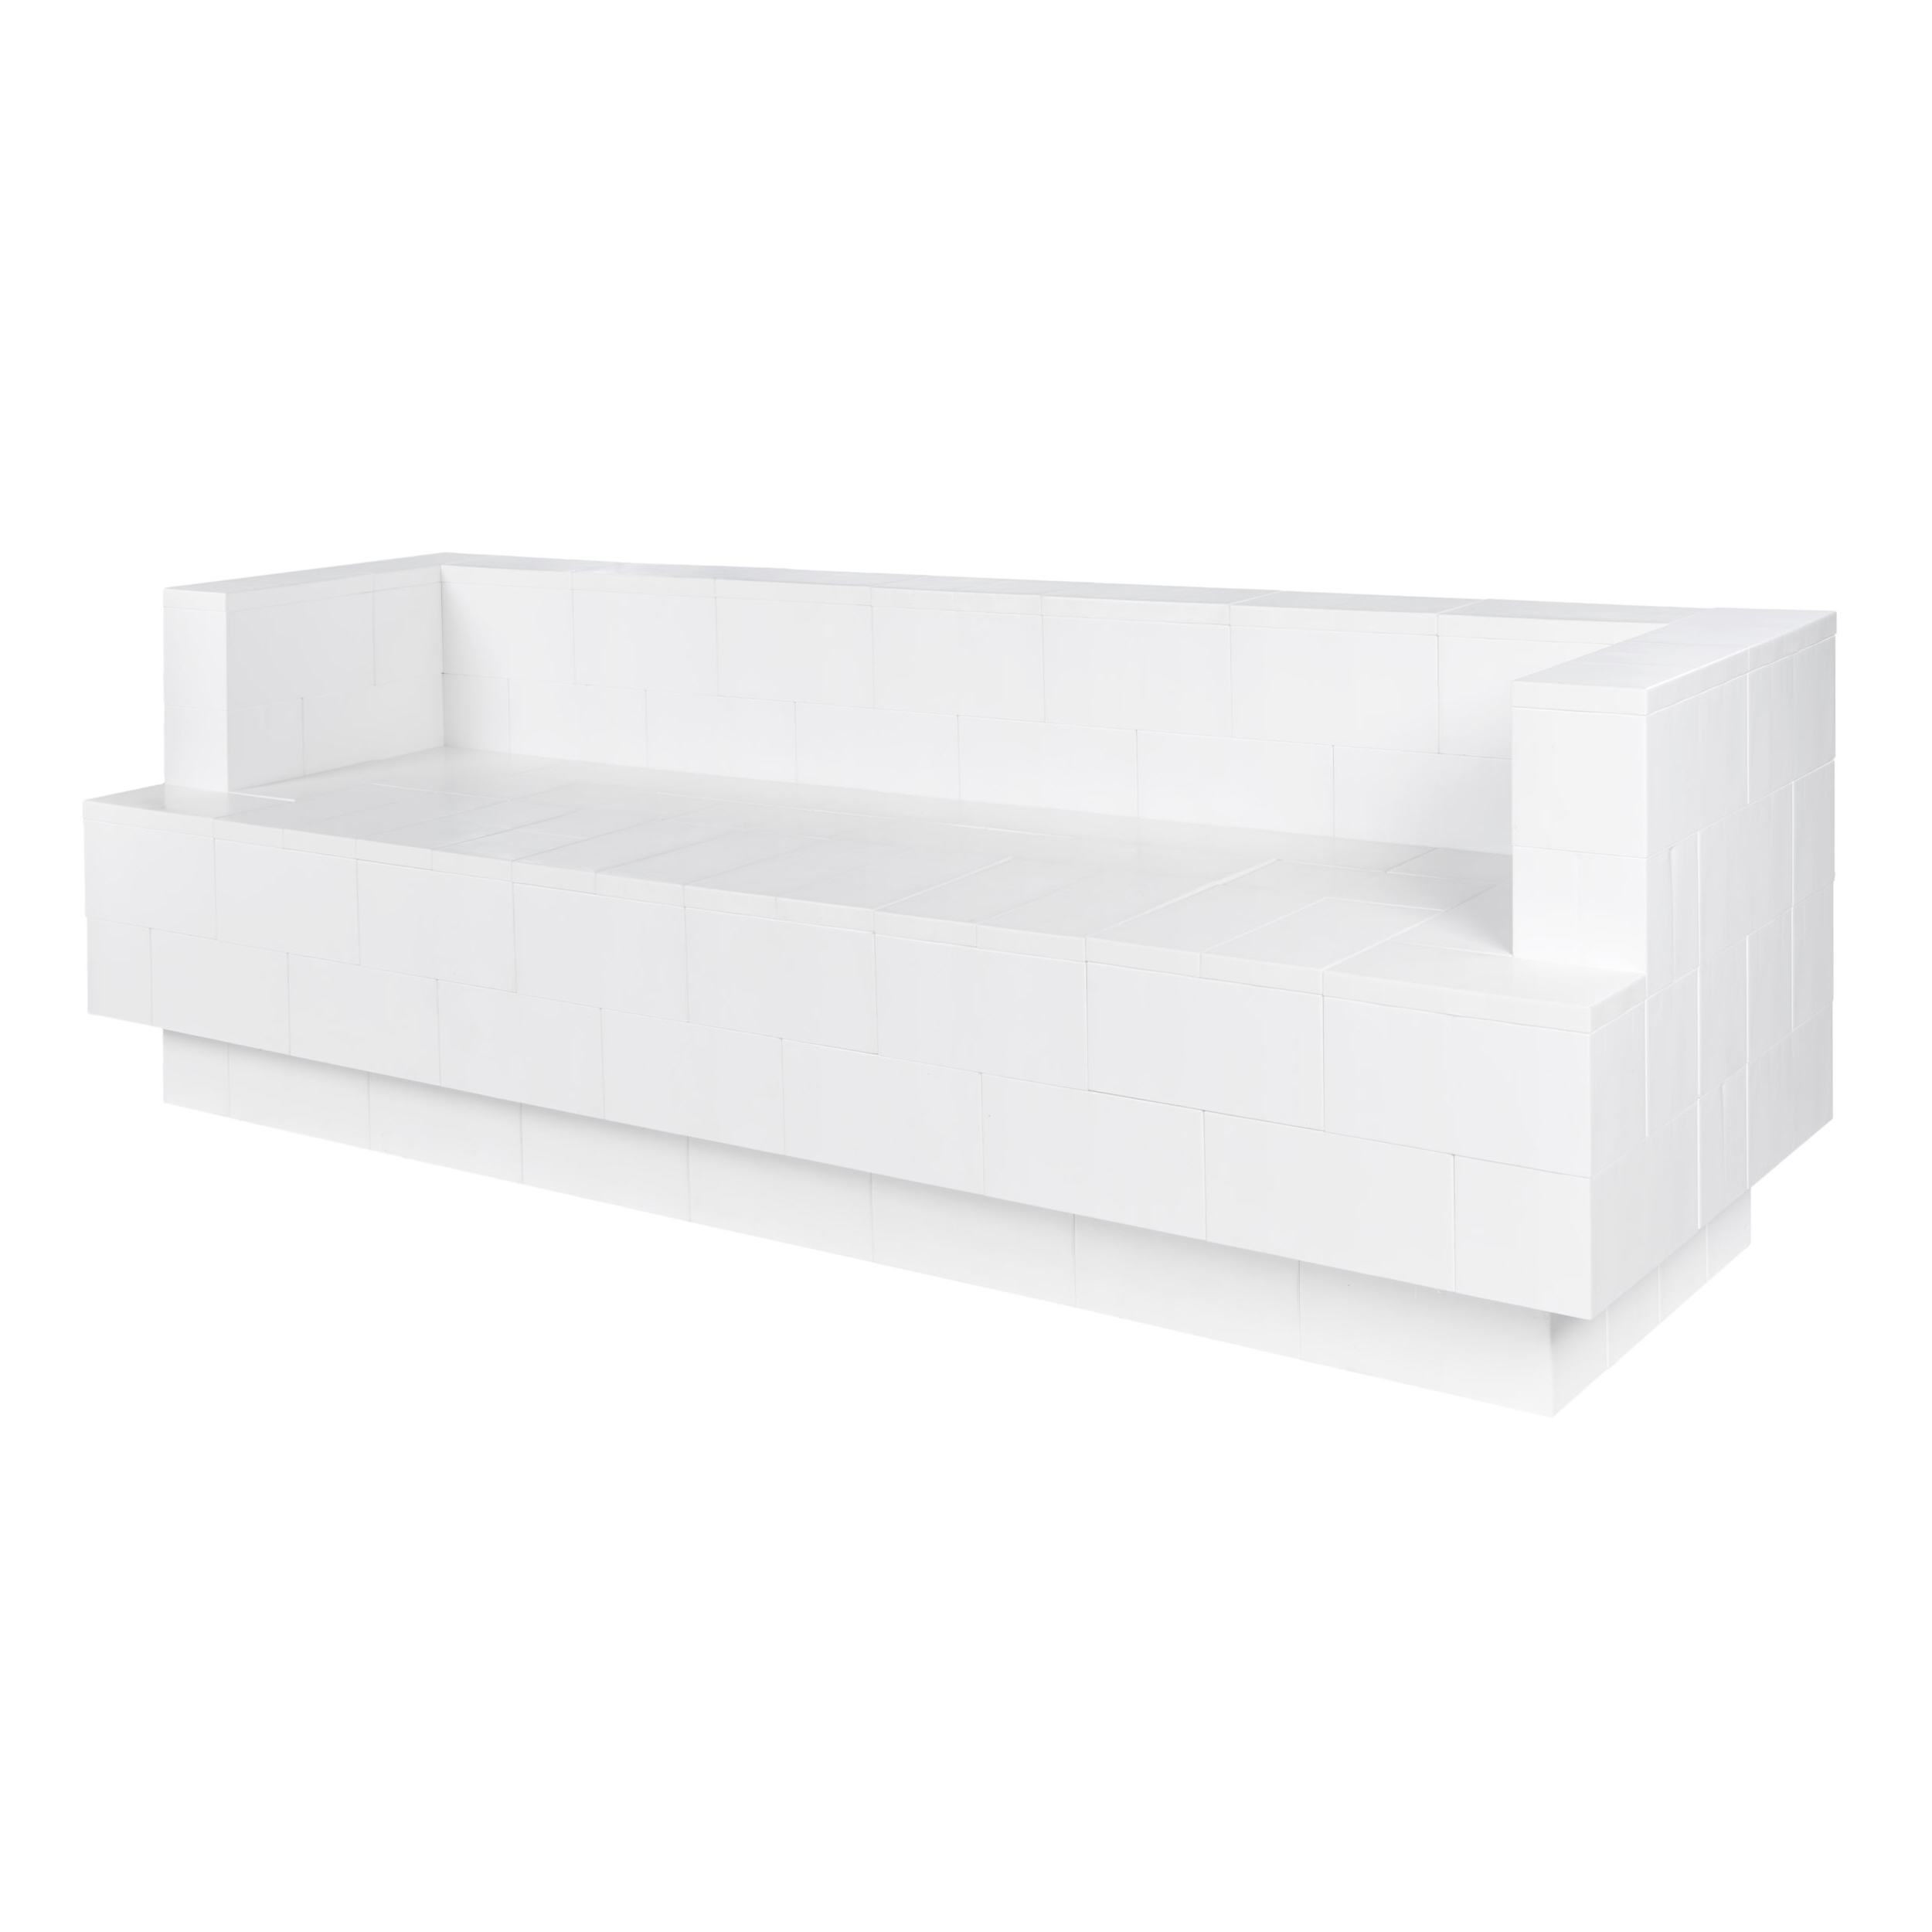 8ft Sofa Kit with Cantilever